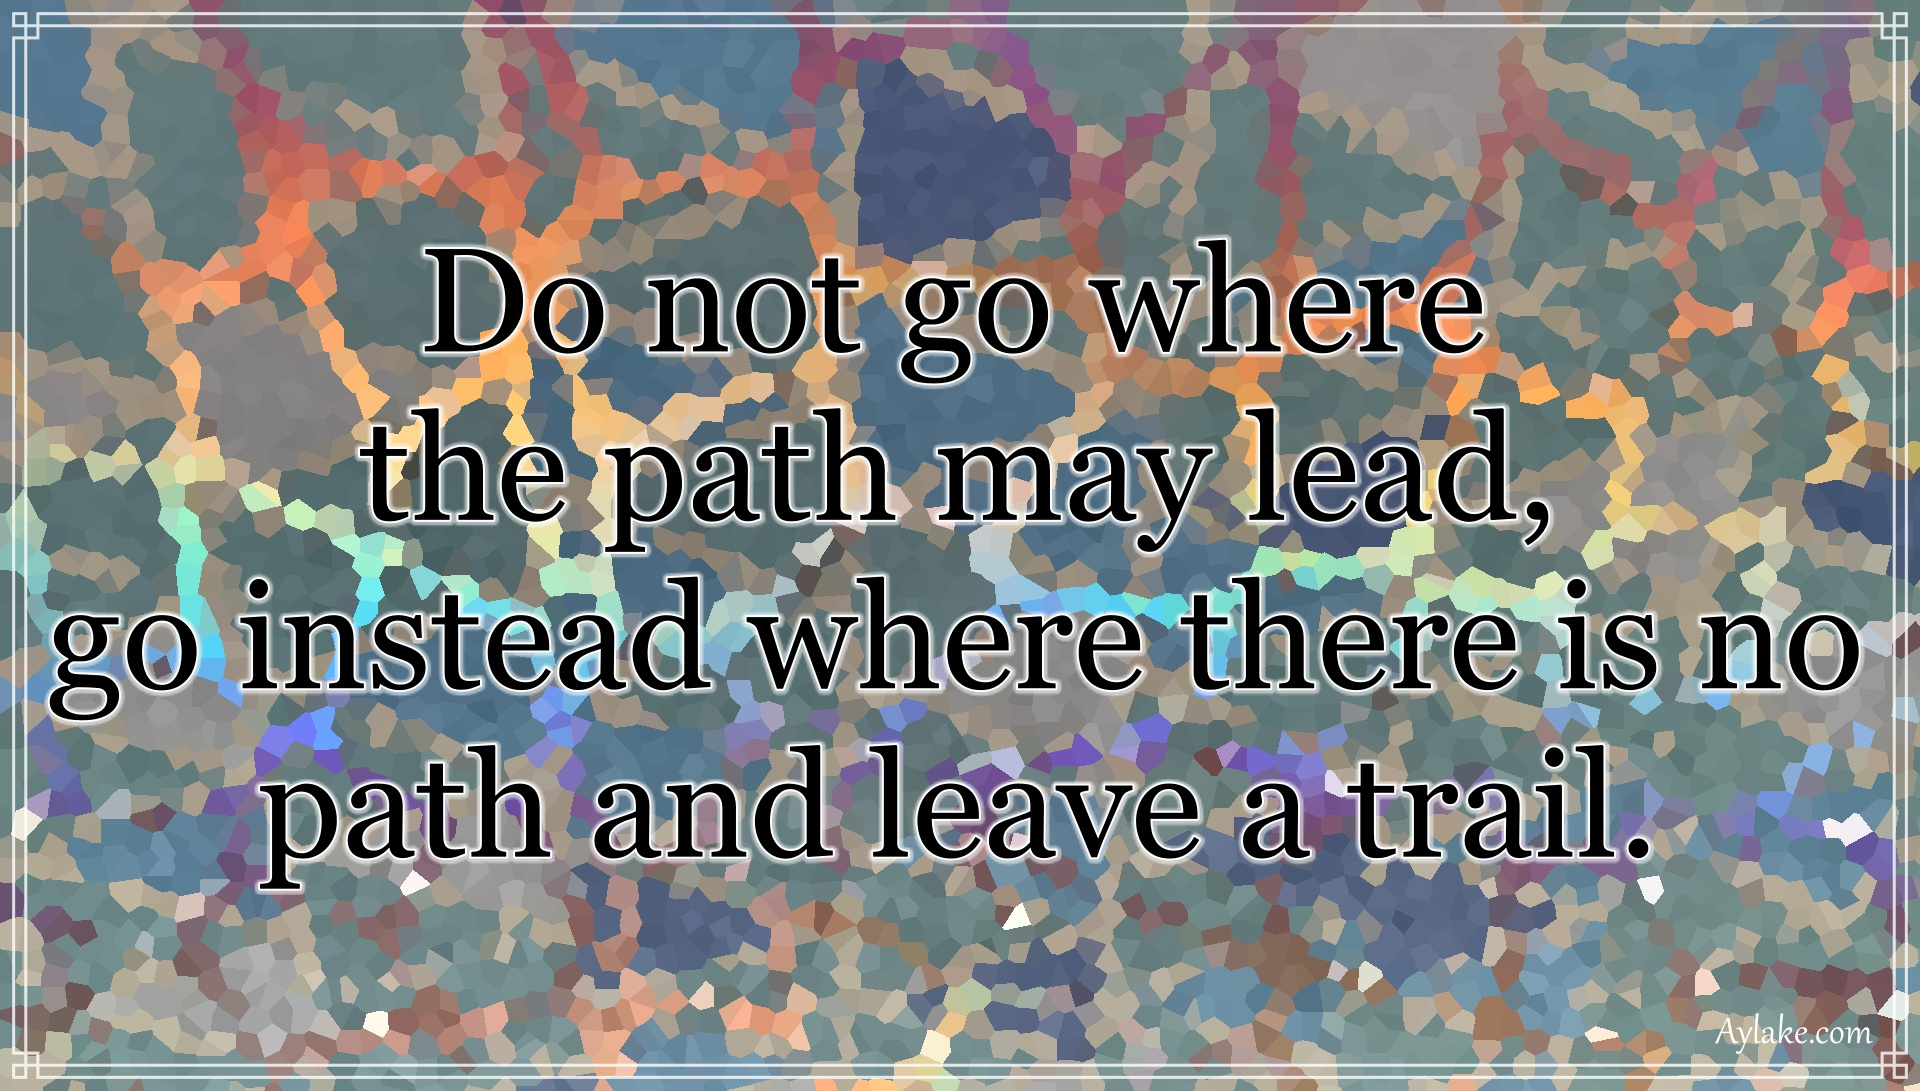 Inspirational quotes Do not go where the path may lead Aylake